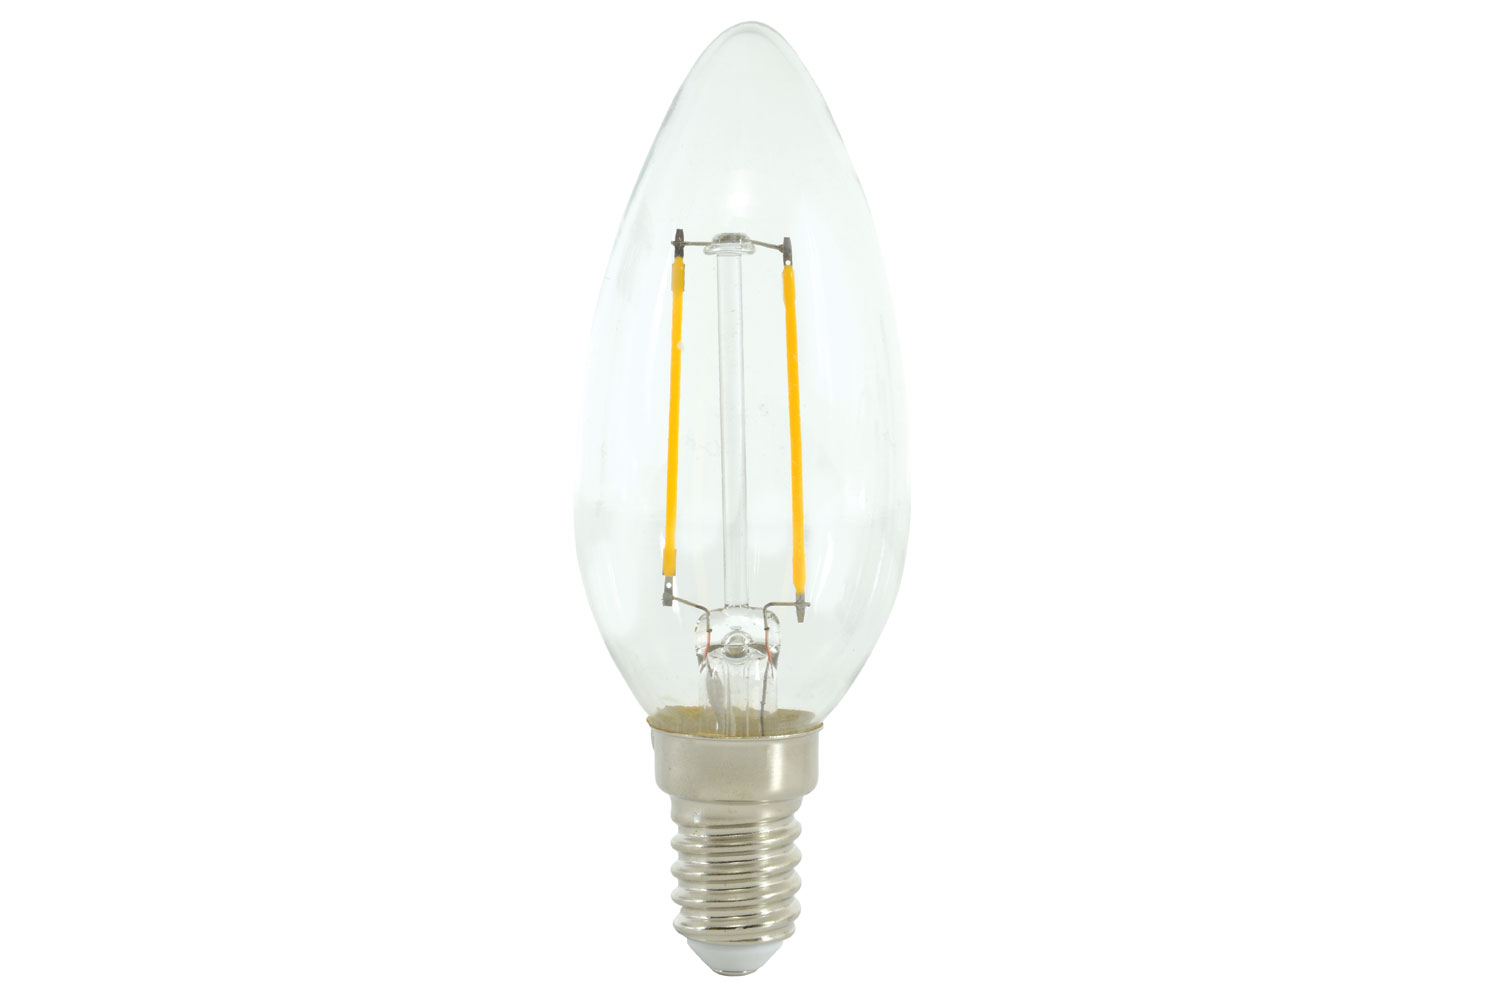 lyyt Candle Filament Lamp 2W LED E14 WW